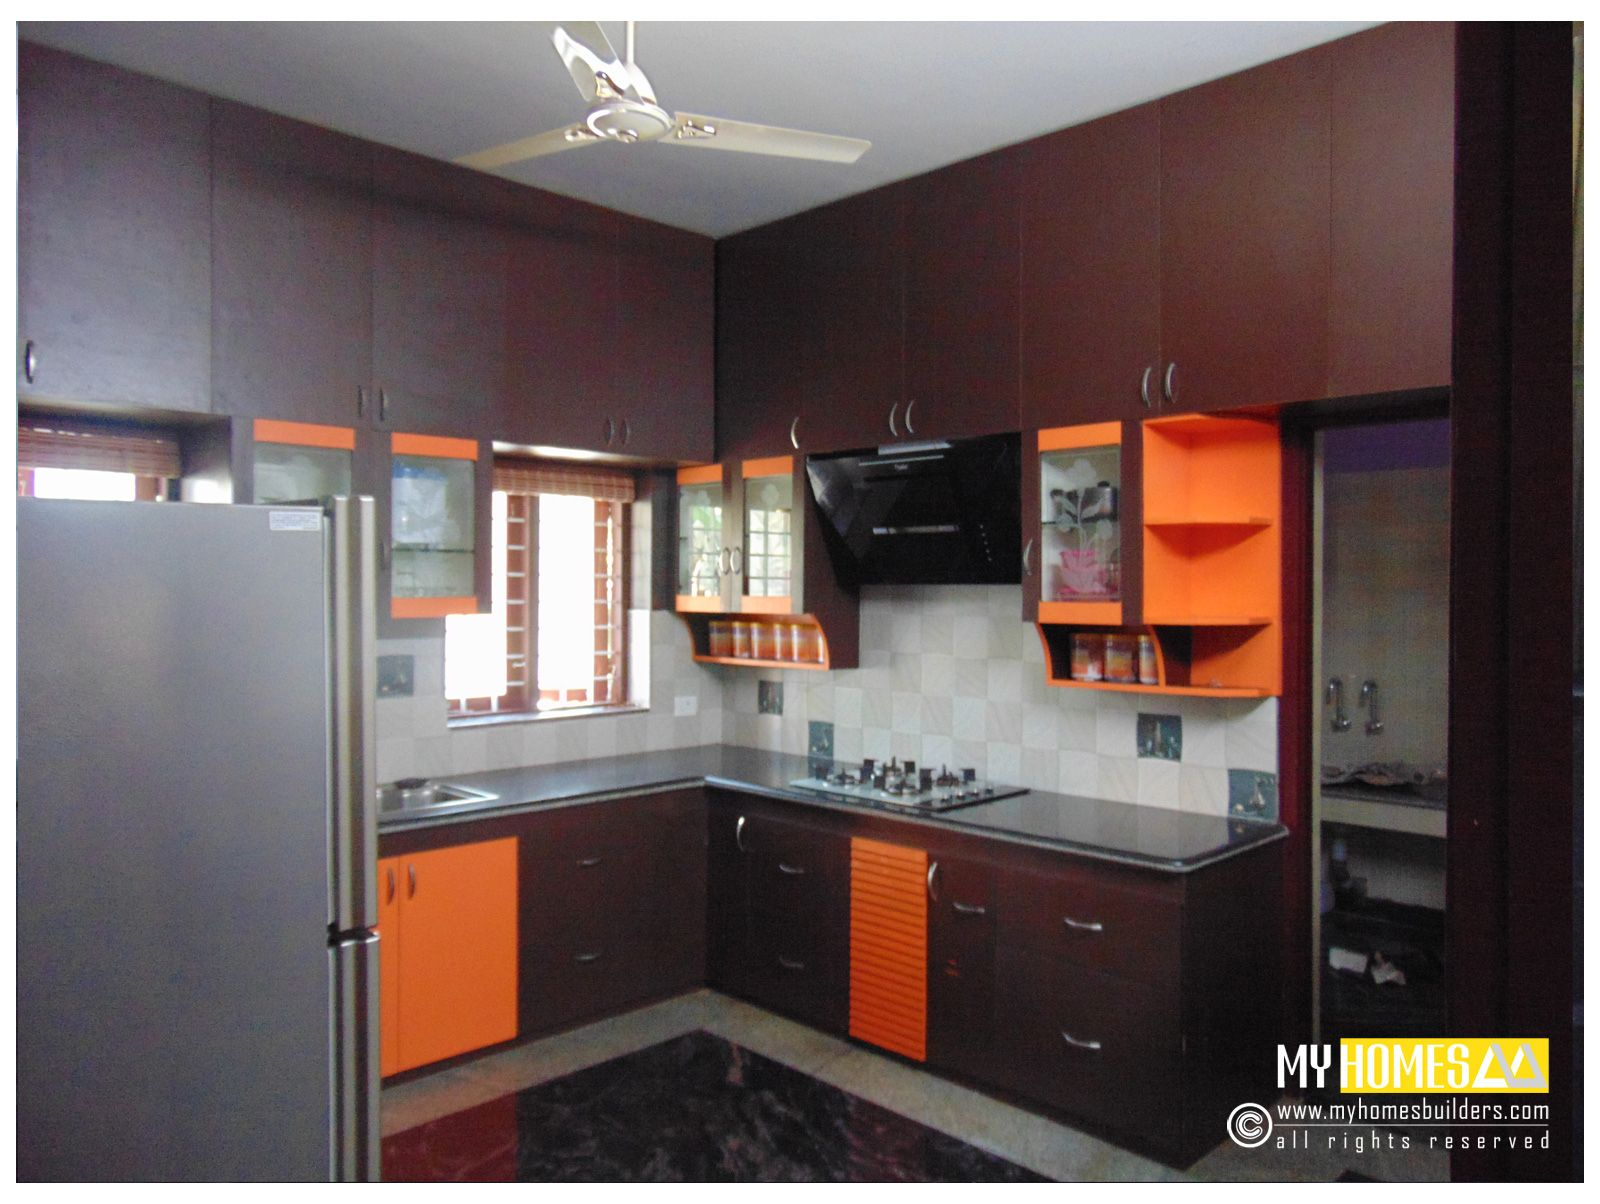 Kerala Homes Modular Kitchen Designs Modular Kitchen Interior Design